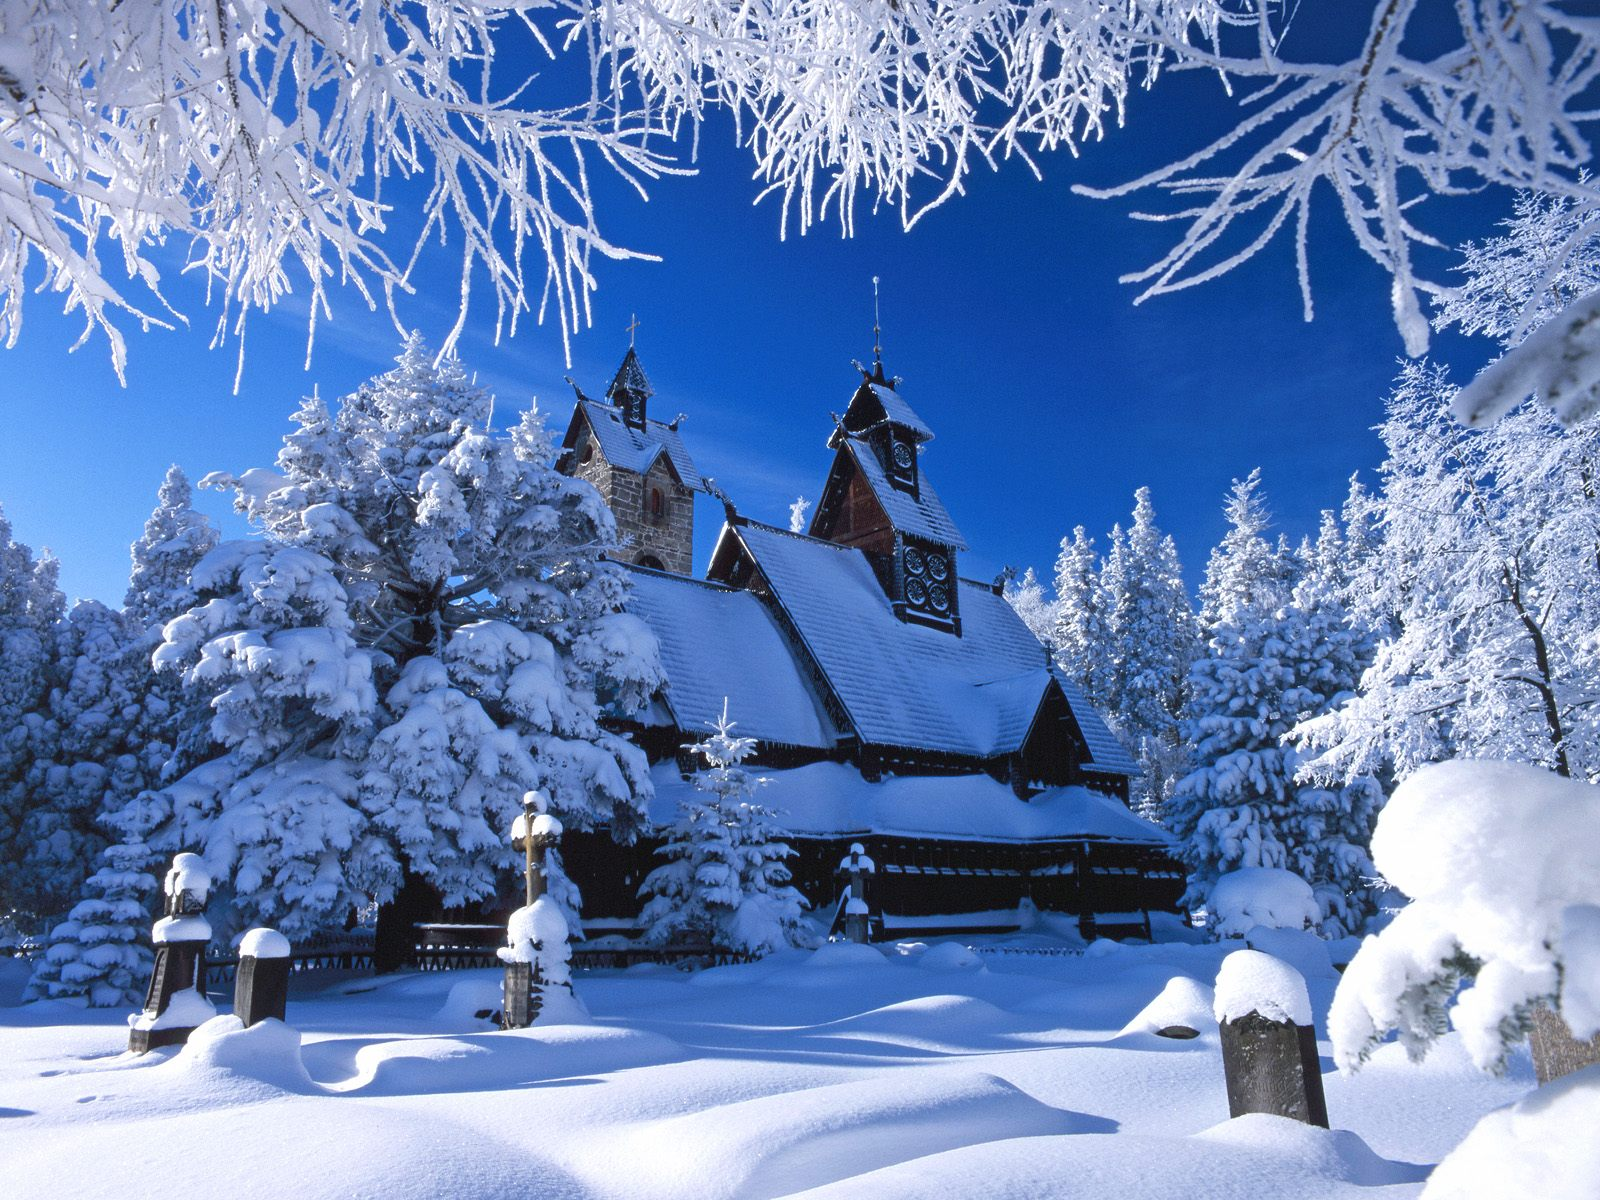 http://4.bp.blogspot.com/_RAlP3BmEW1Q/TQNuWCKZ1gI/AAAAAAAABfQ/_KkE8t0Xa_M/s1600/Winter-achtergronden-winter-wallpapers-winter-landschappen-32.jpg